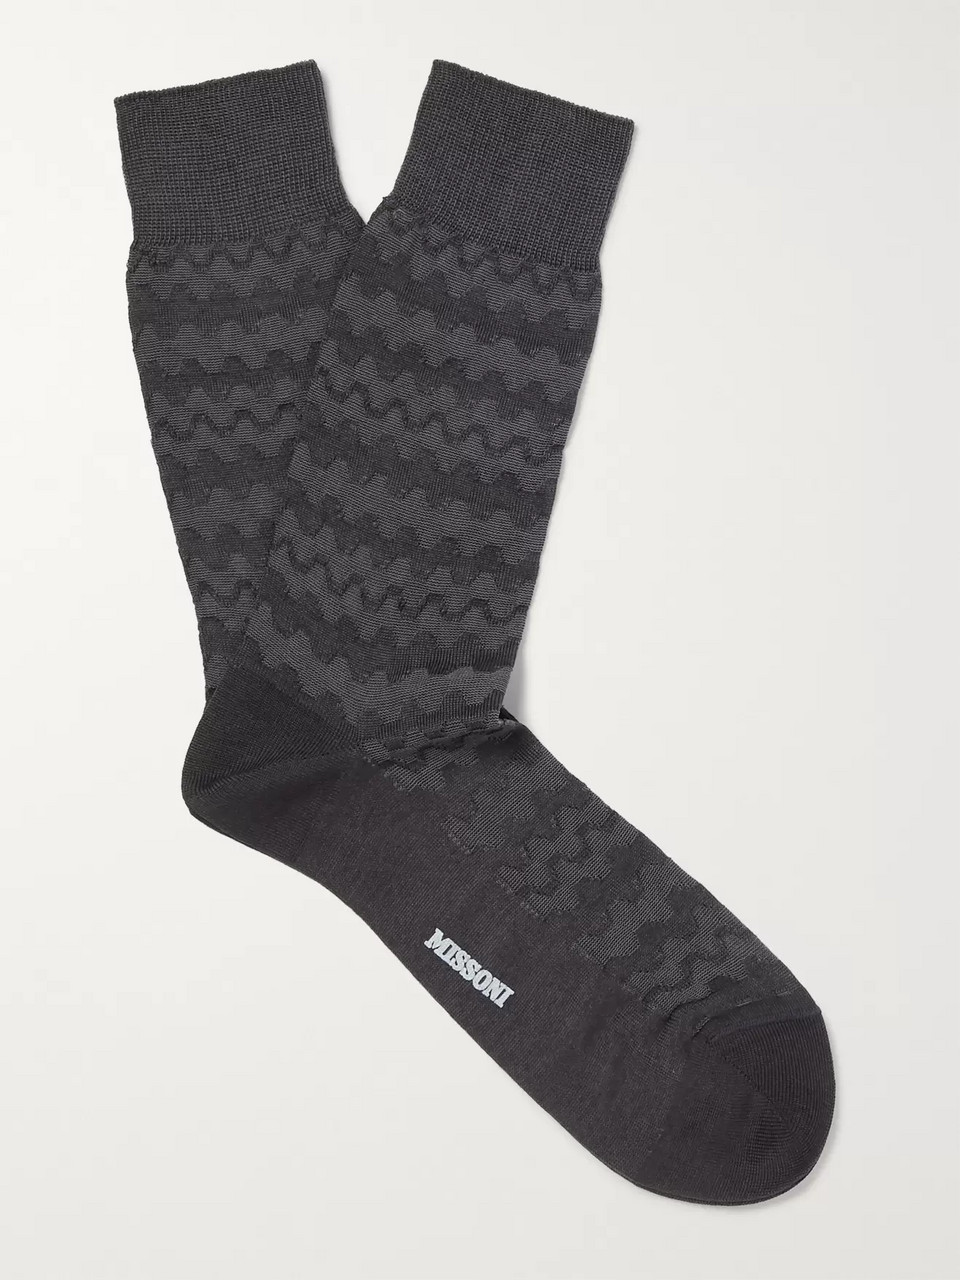 Missoni Crochet-Knit Cotton-Blend Socks